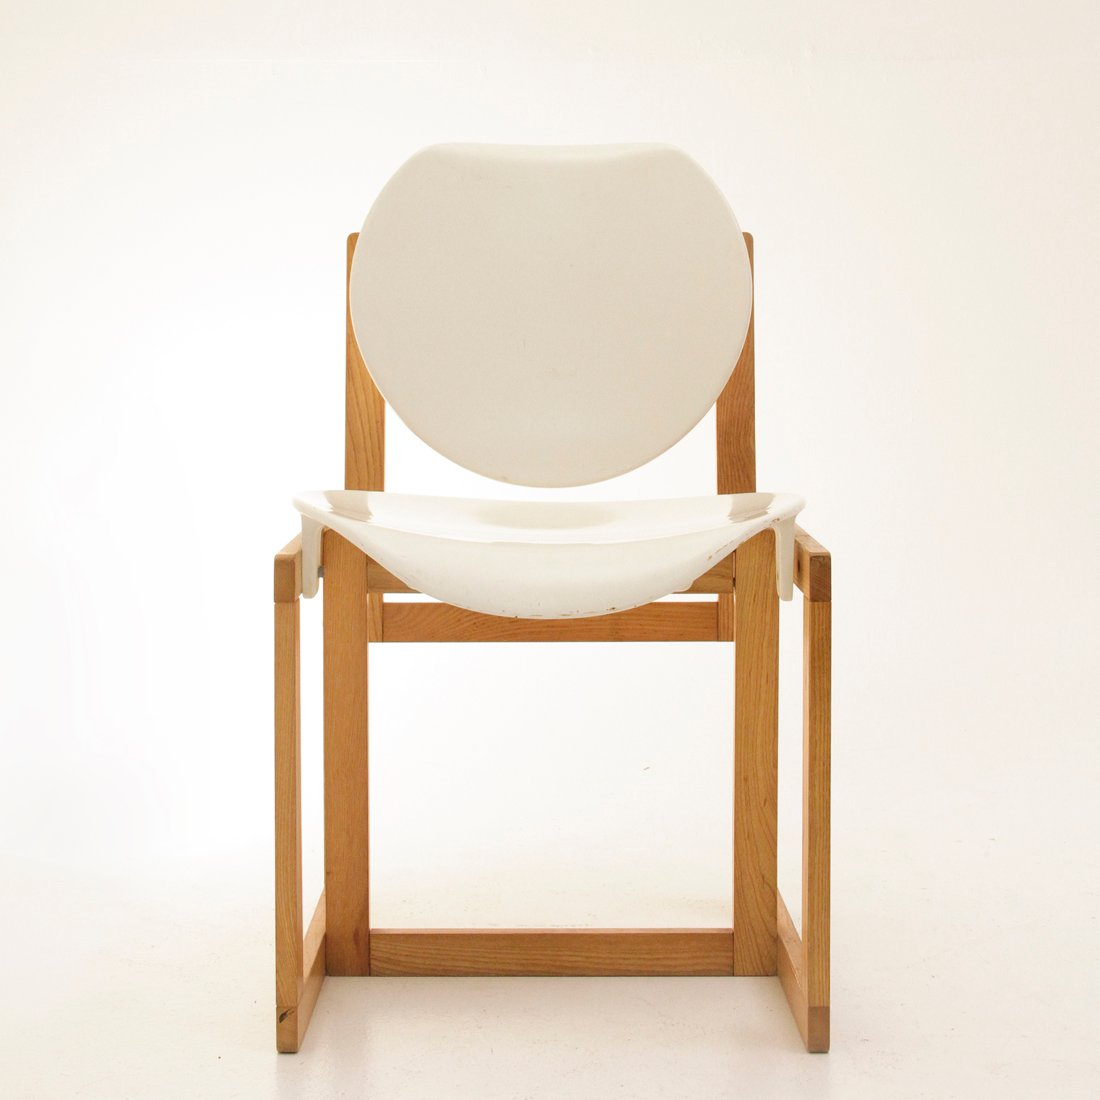 White plastic folding chairs - Vintage Italian Wood And White Plastic Chair 1970s